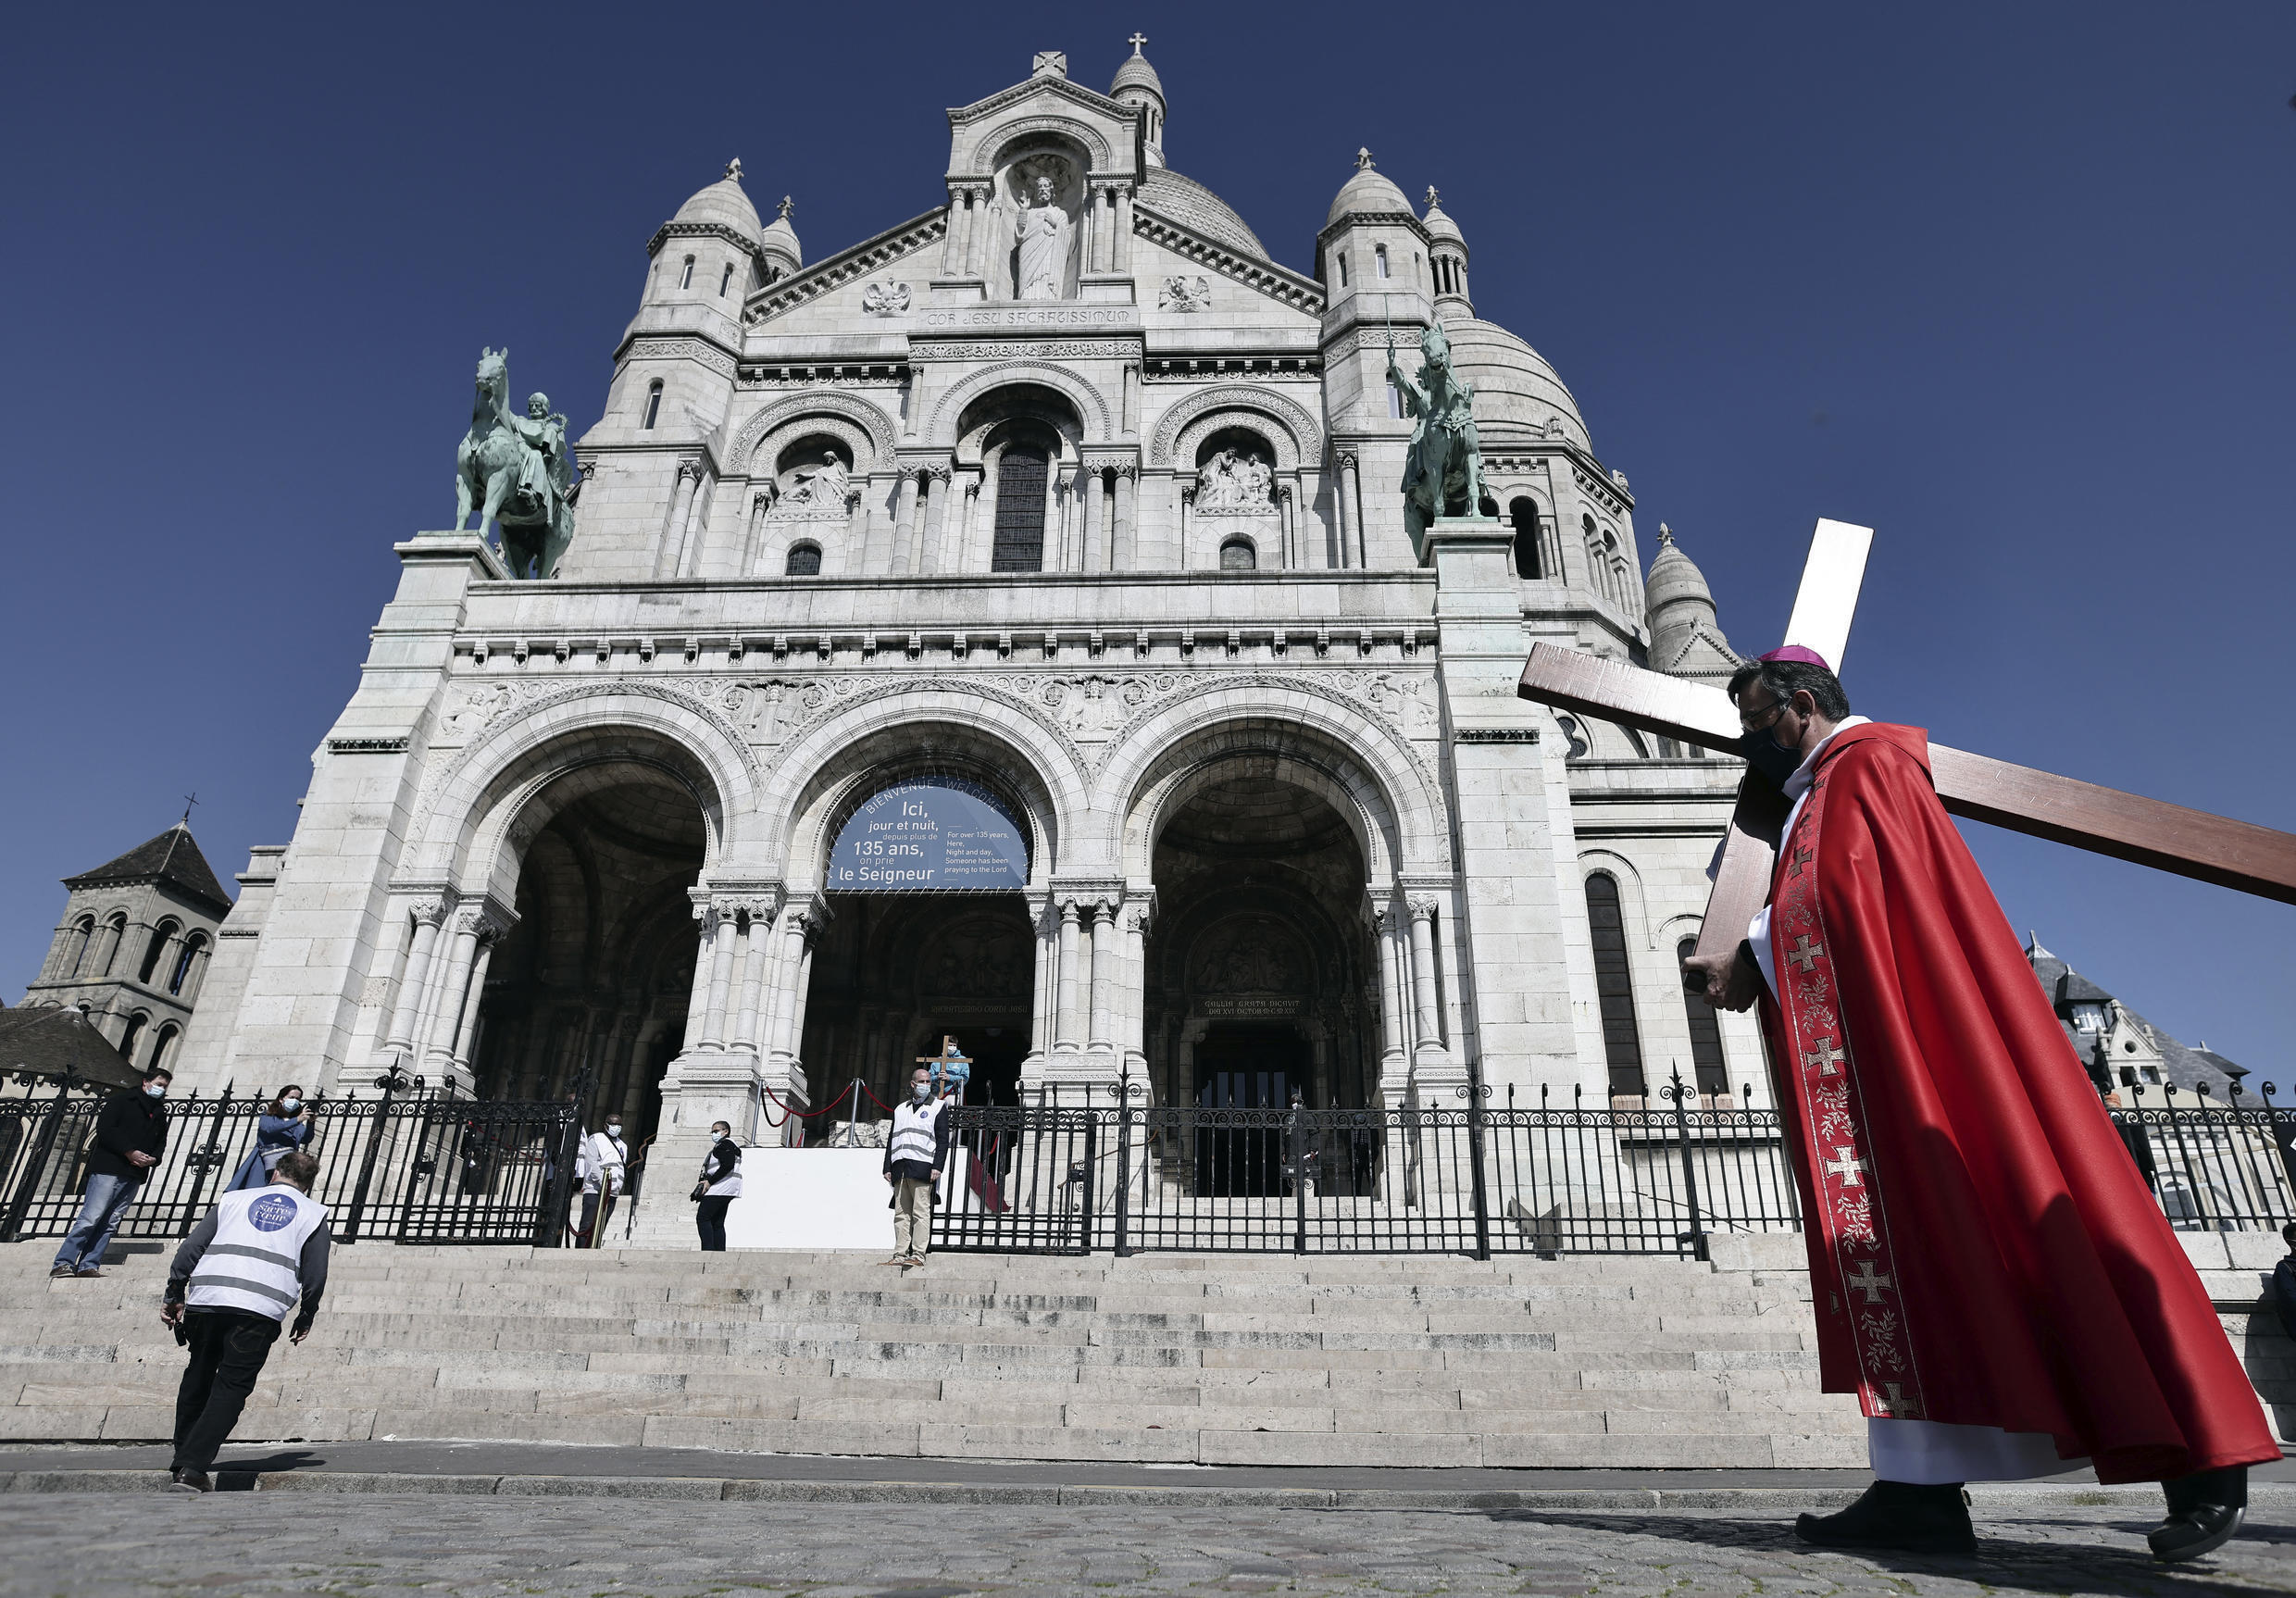 Archbishop of Paris Michel Aupetit carries the holy cross during Good Friday celebrations at the Sacre Coeur Basilica in Paris on April 2, 2021.